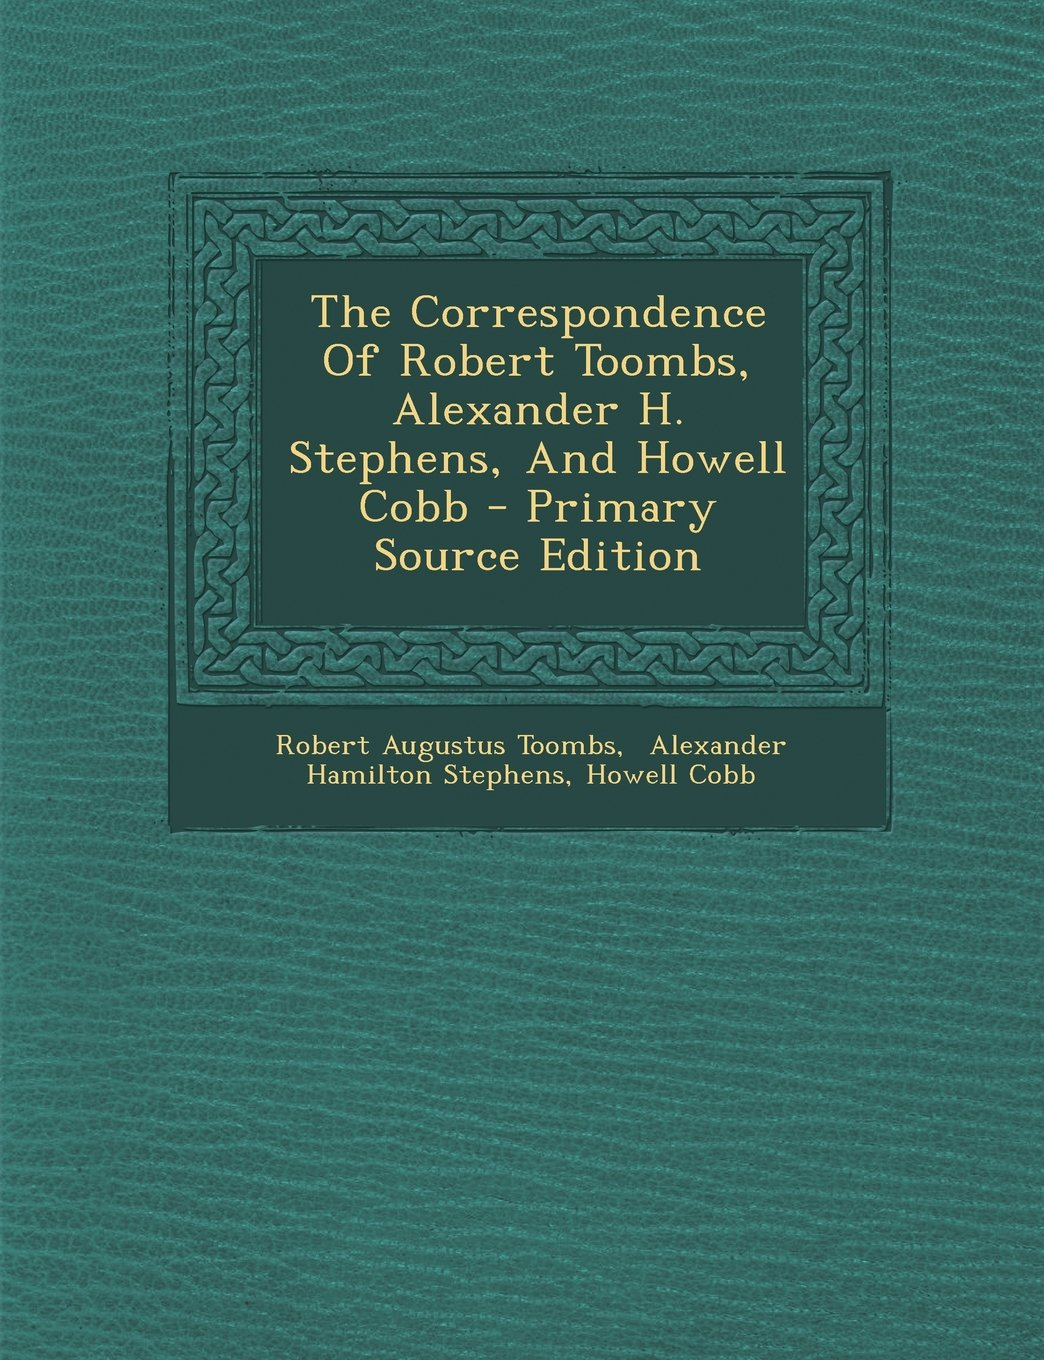 The Correspondence Of Robert Toombs, Alexander H. Stephens, And Howell Cobb  - Primary Source Edition Paperback – October 19, 2013